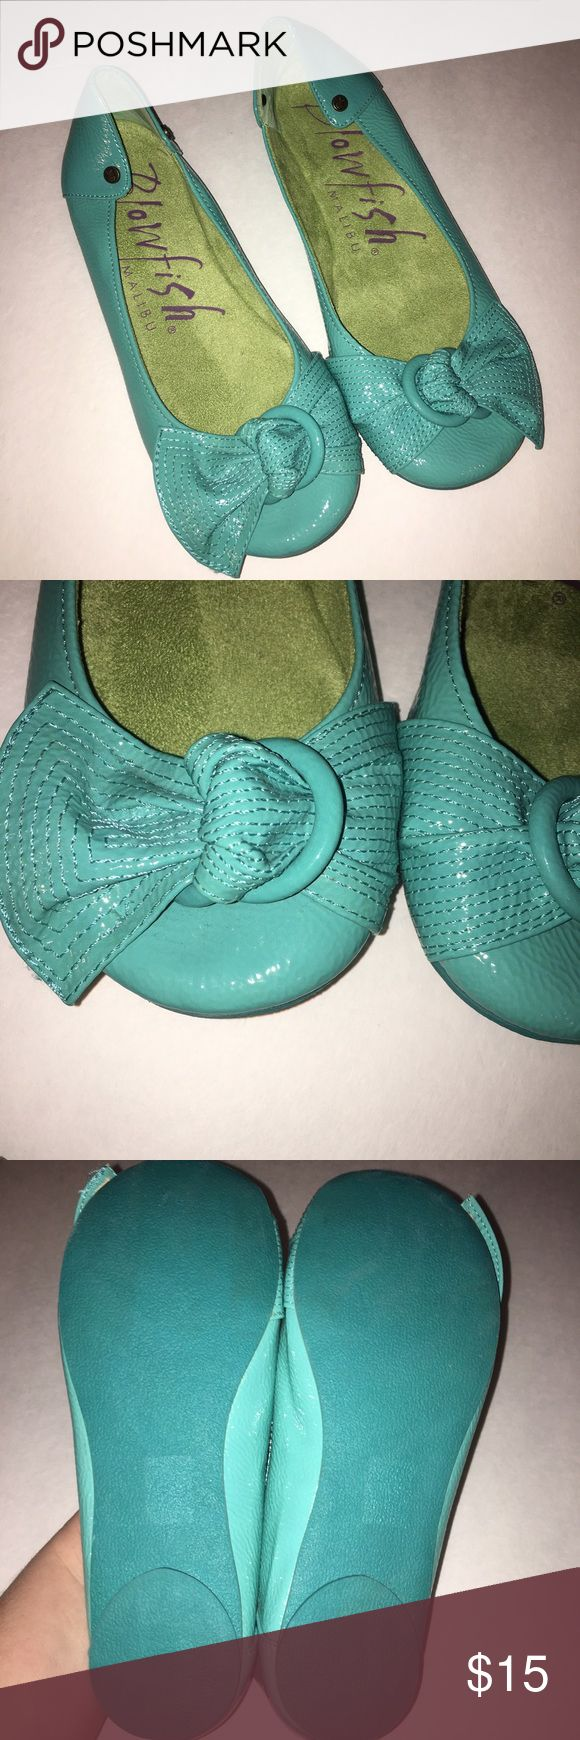 Teal flats Teal blowfish flats. Bow detail in front. Size 7.5 but fits more like a 7. Very comfortable. Worn once. Blowfish Shoes Flats & Loafers